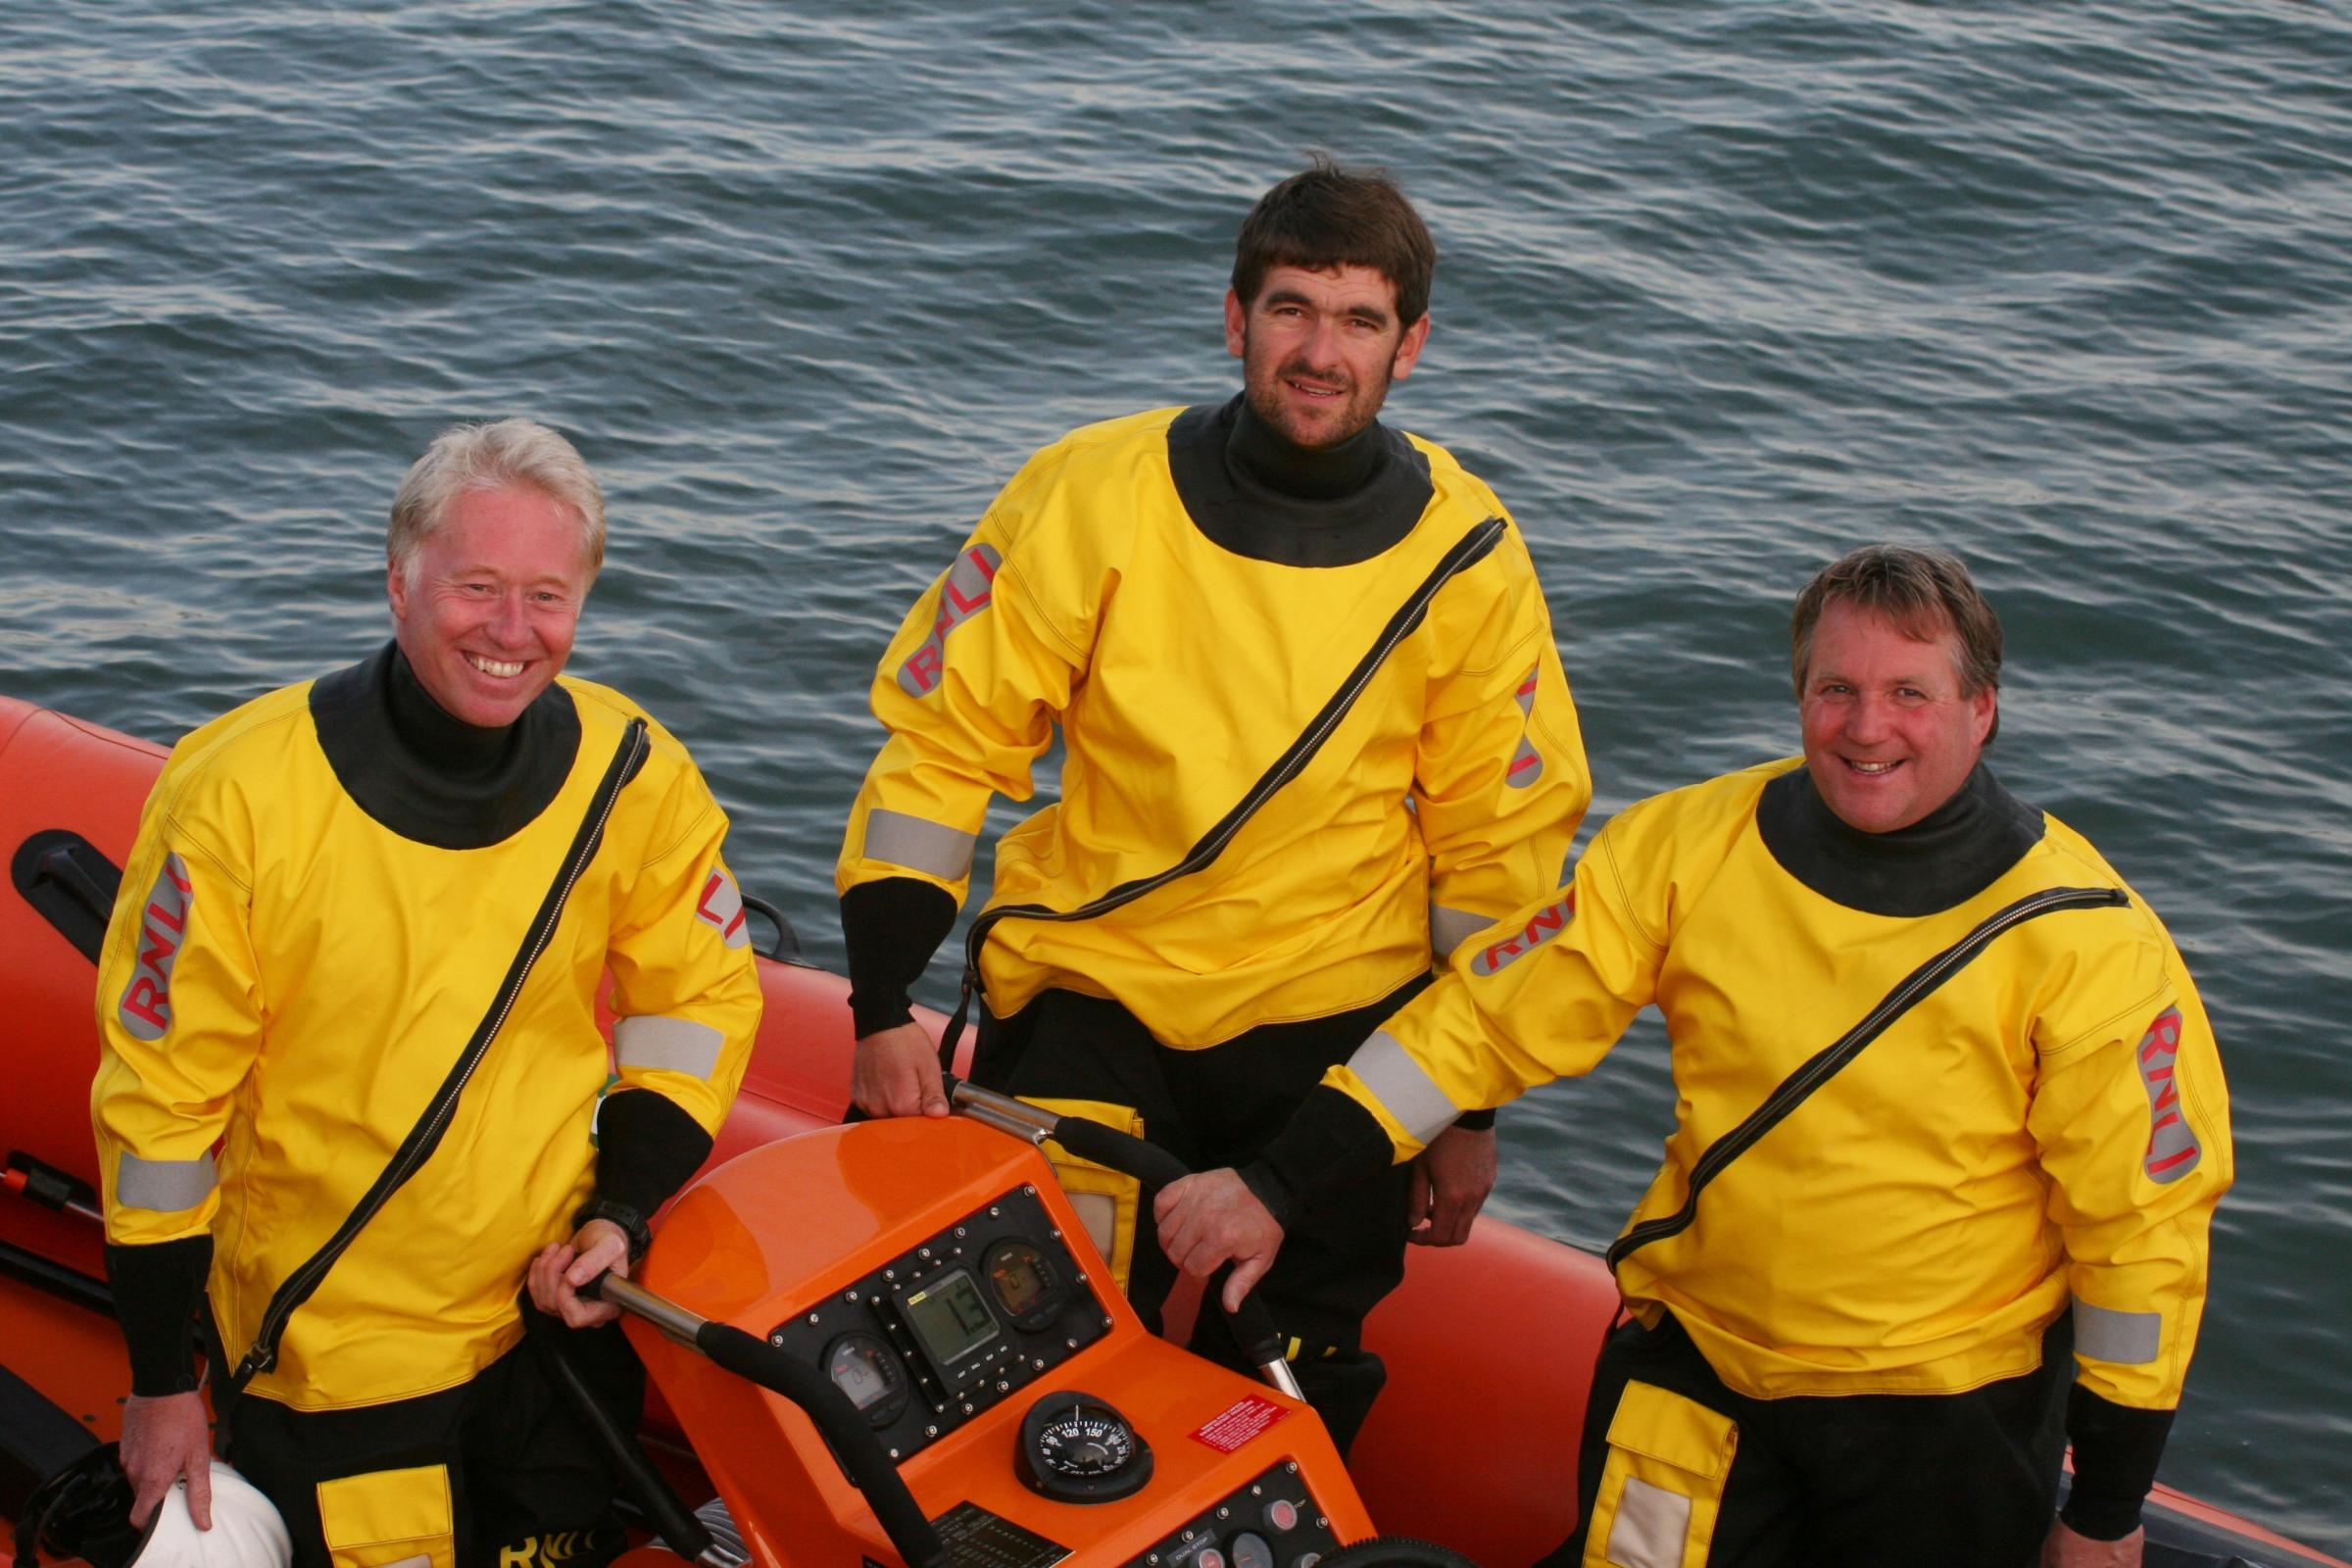 RESCUERS: Tim Edwards, John Cable, Mark Colley. Picture: Richard Horobin